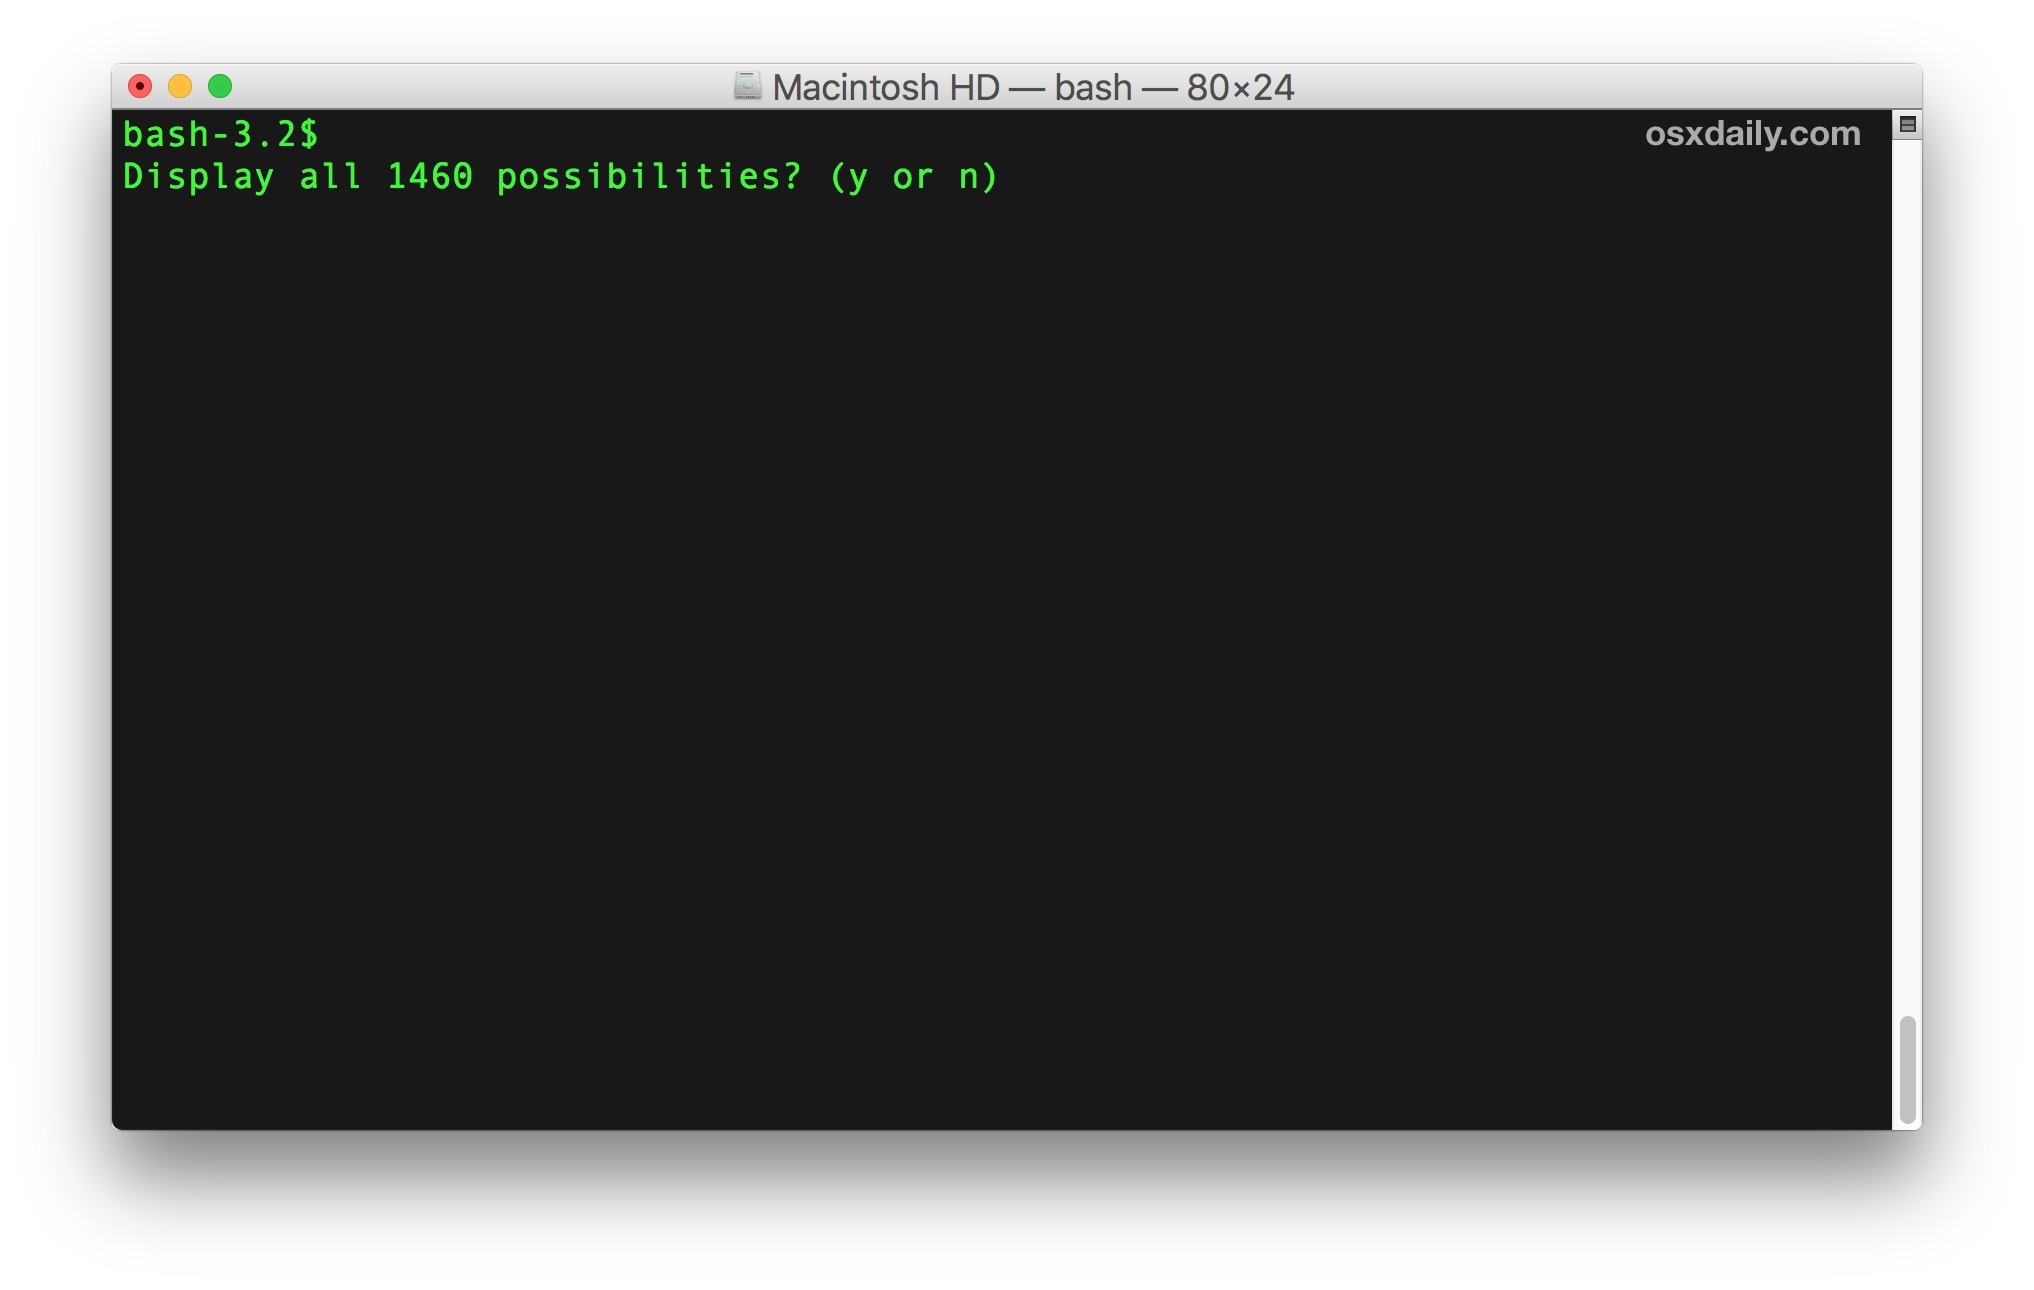 List all possible terminal commands on the Mac